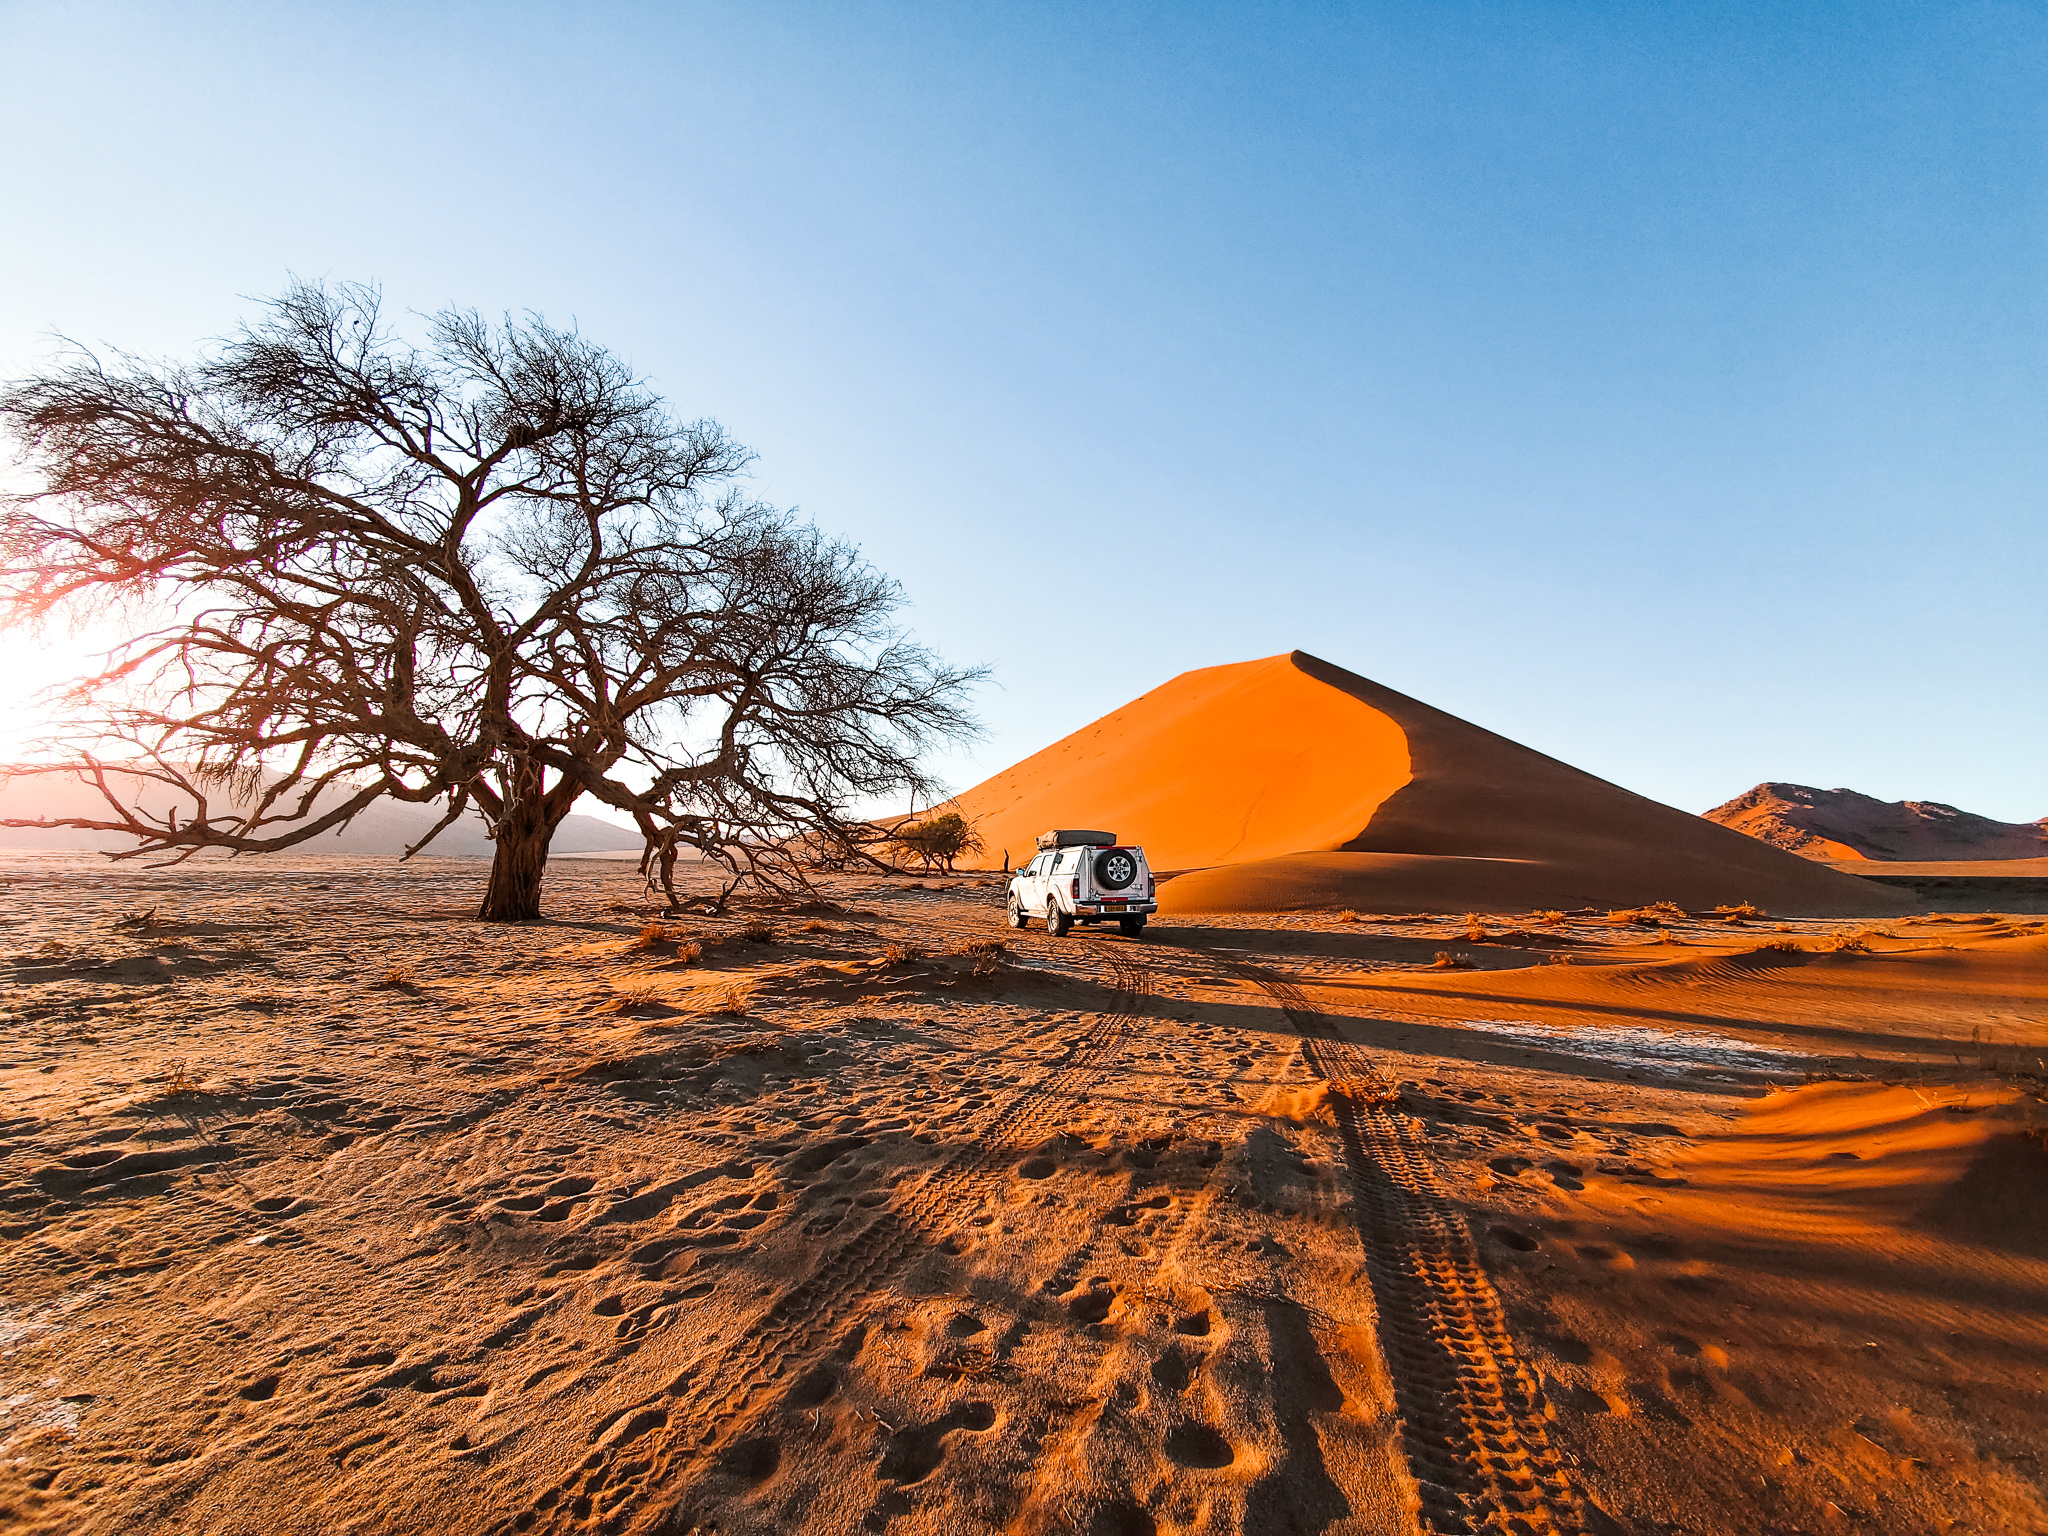 Tall dunes in Namibia in 25 photos to inspire you